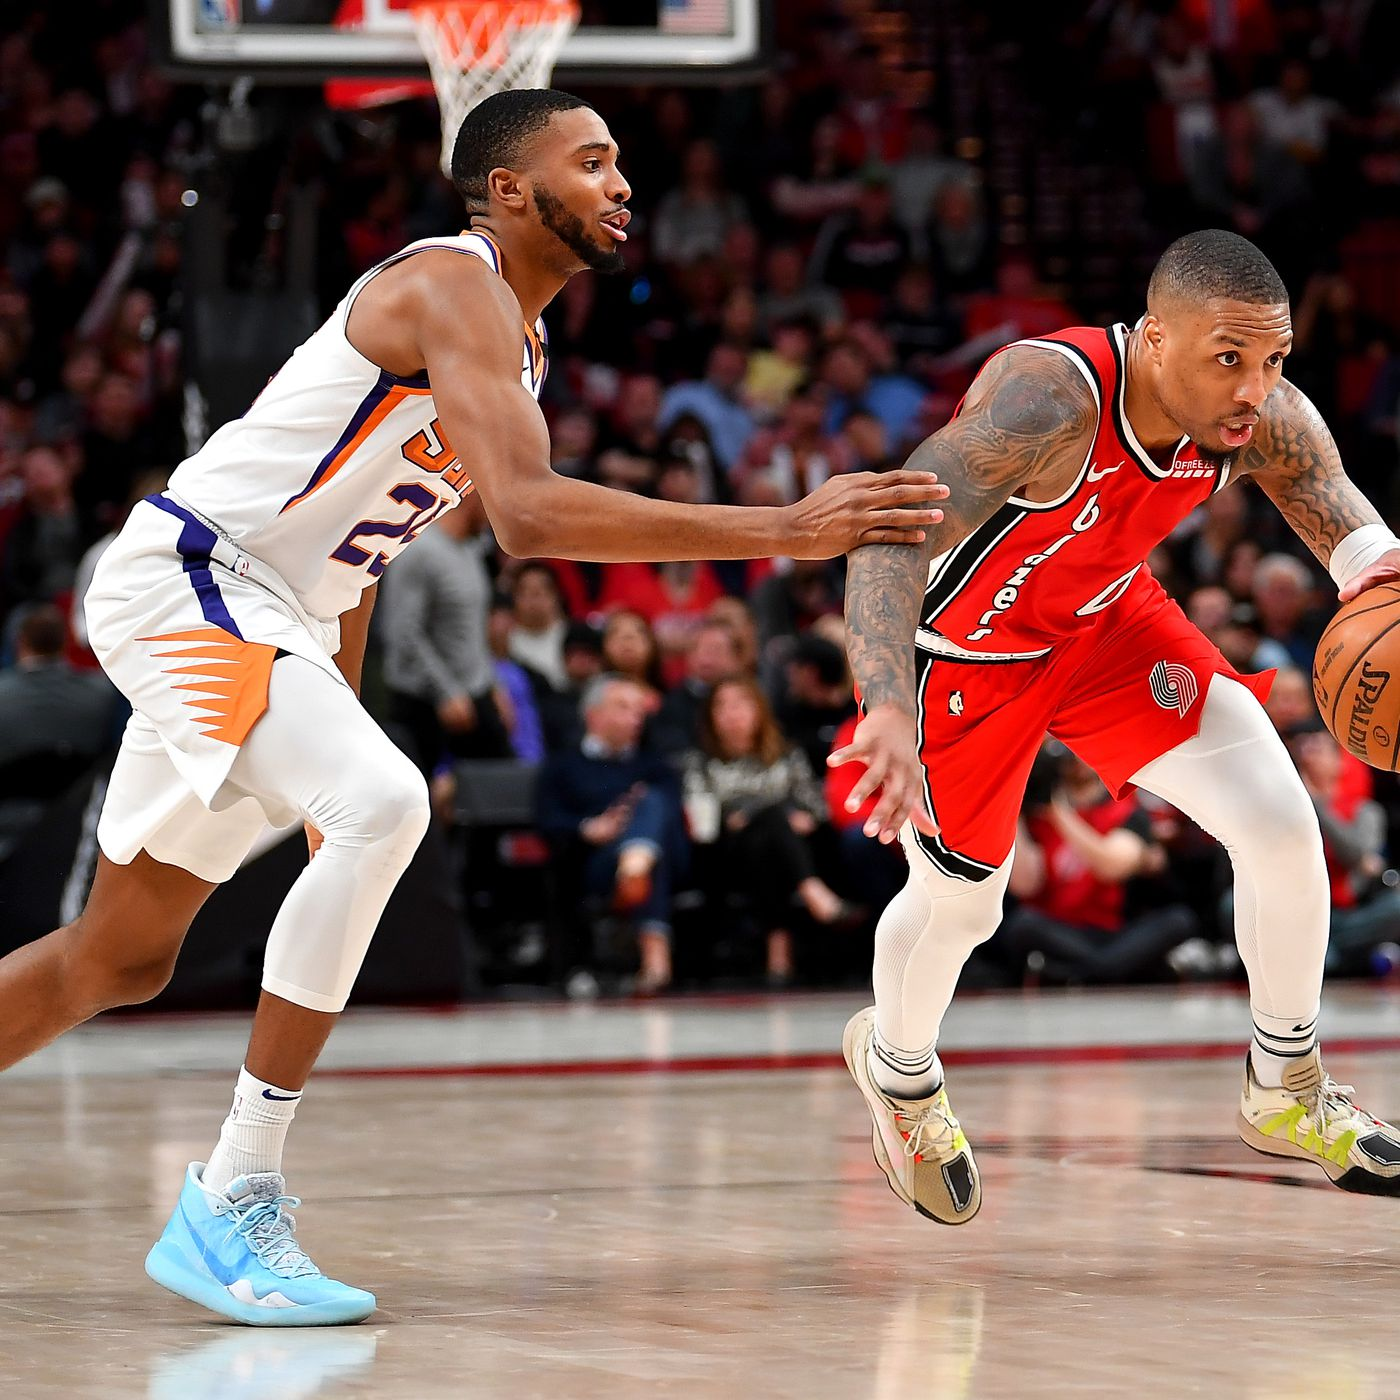 Nba 2020-22 Christmas Day Latest NBA plan has Suns joining a 22 team field to fight for